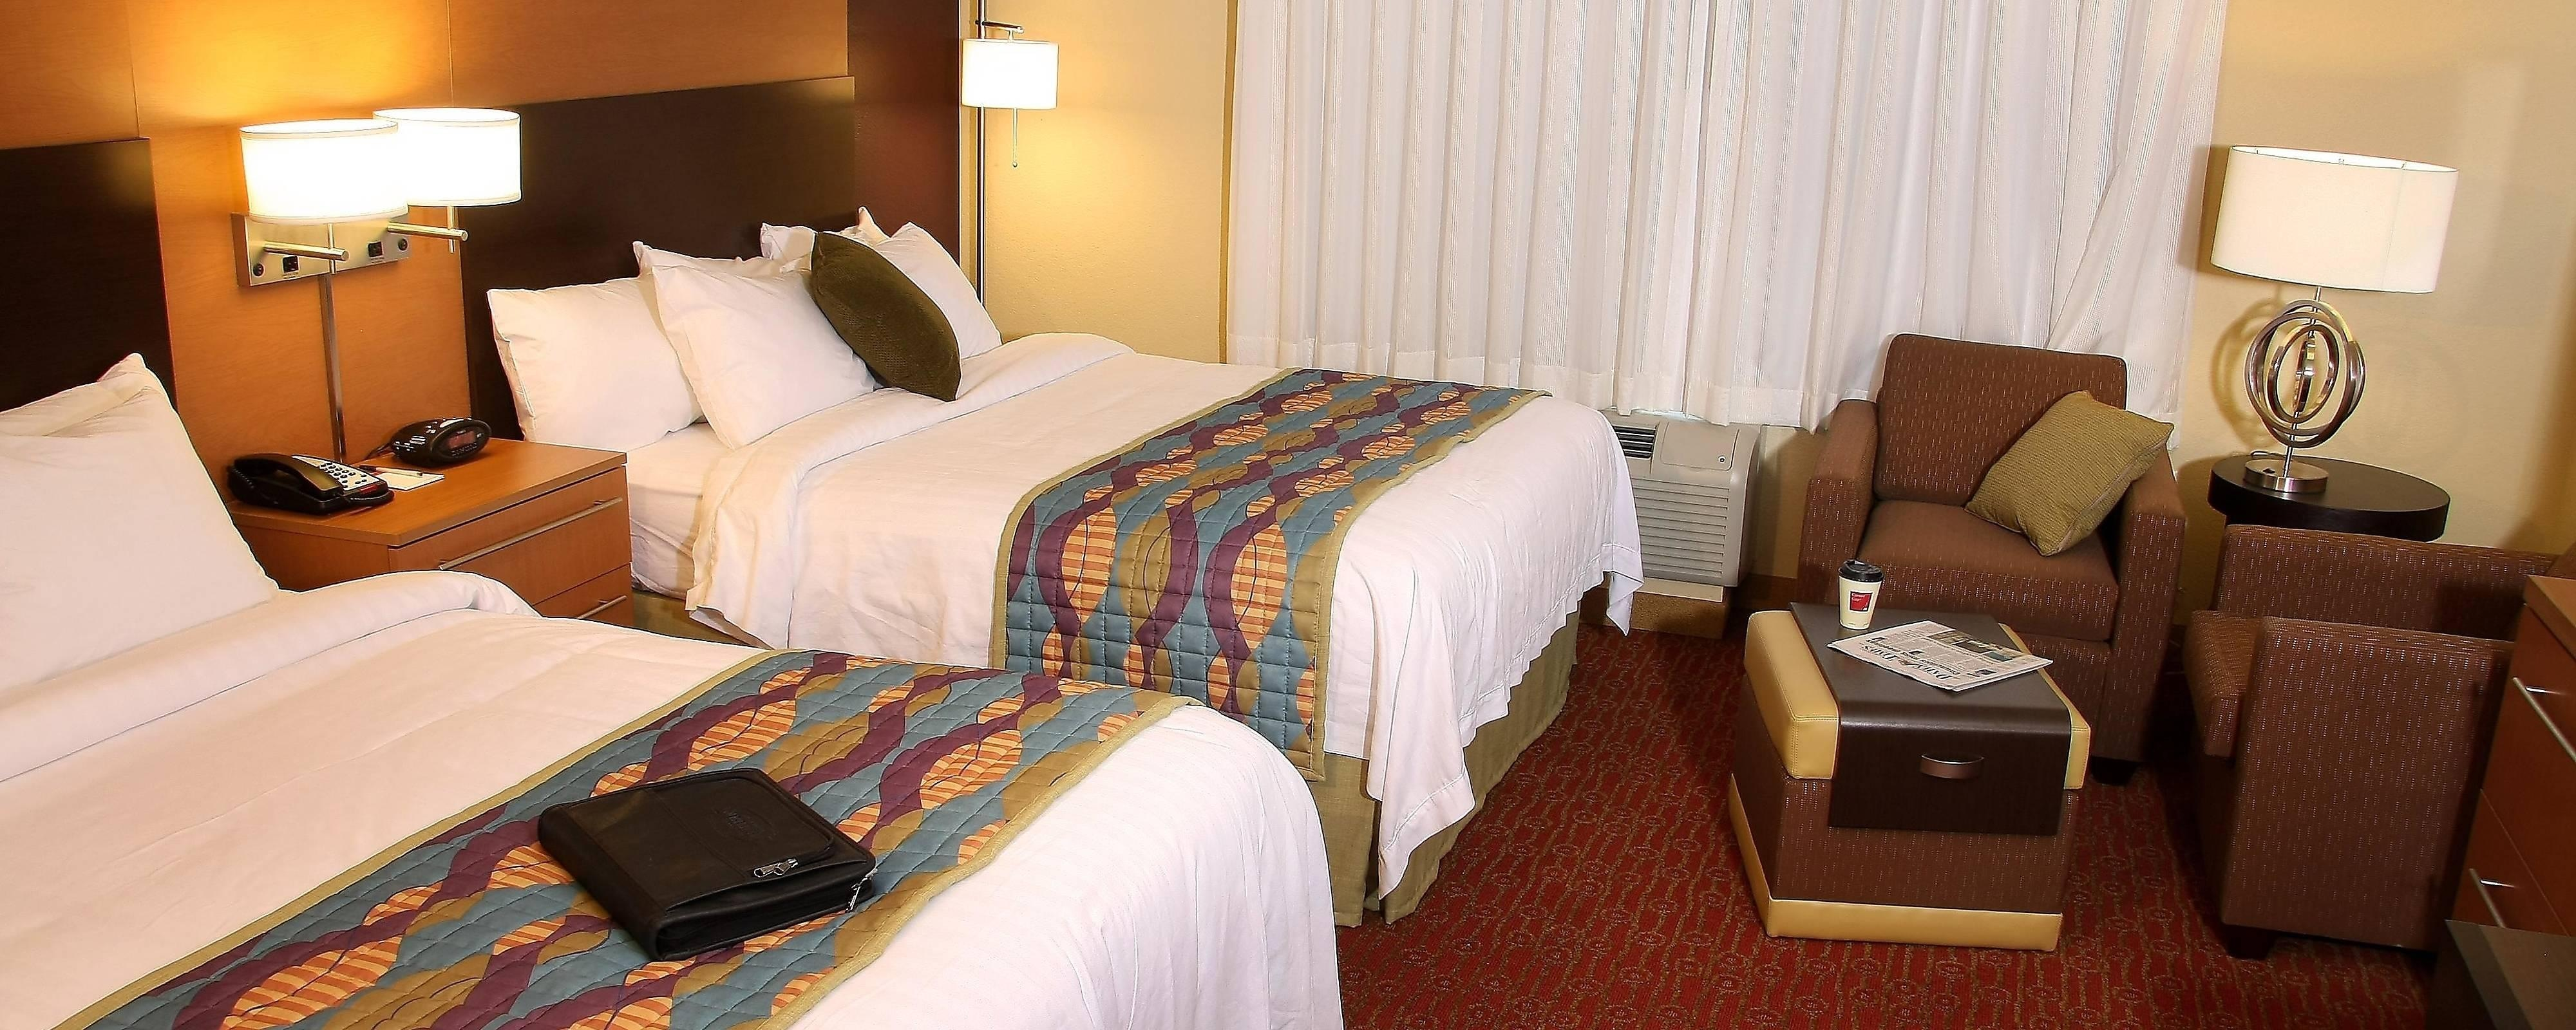 Farmington TownePlace Suites Hotel Queen/Queen Studio Suite